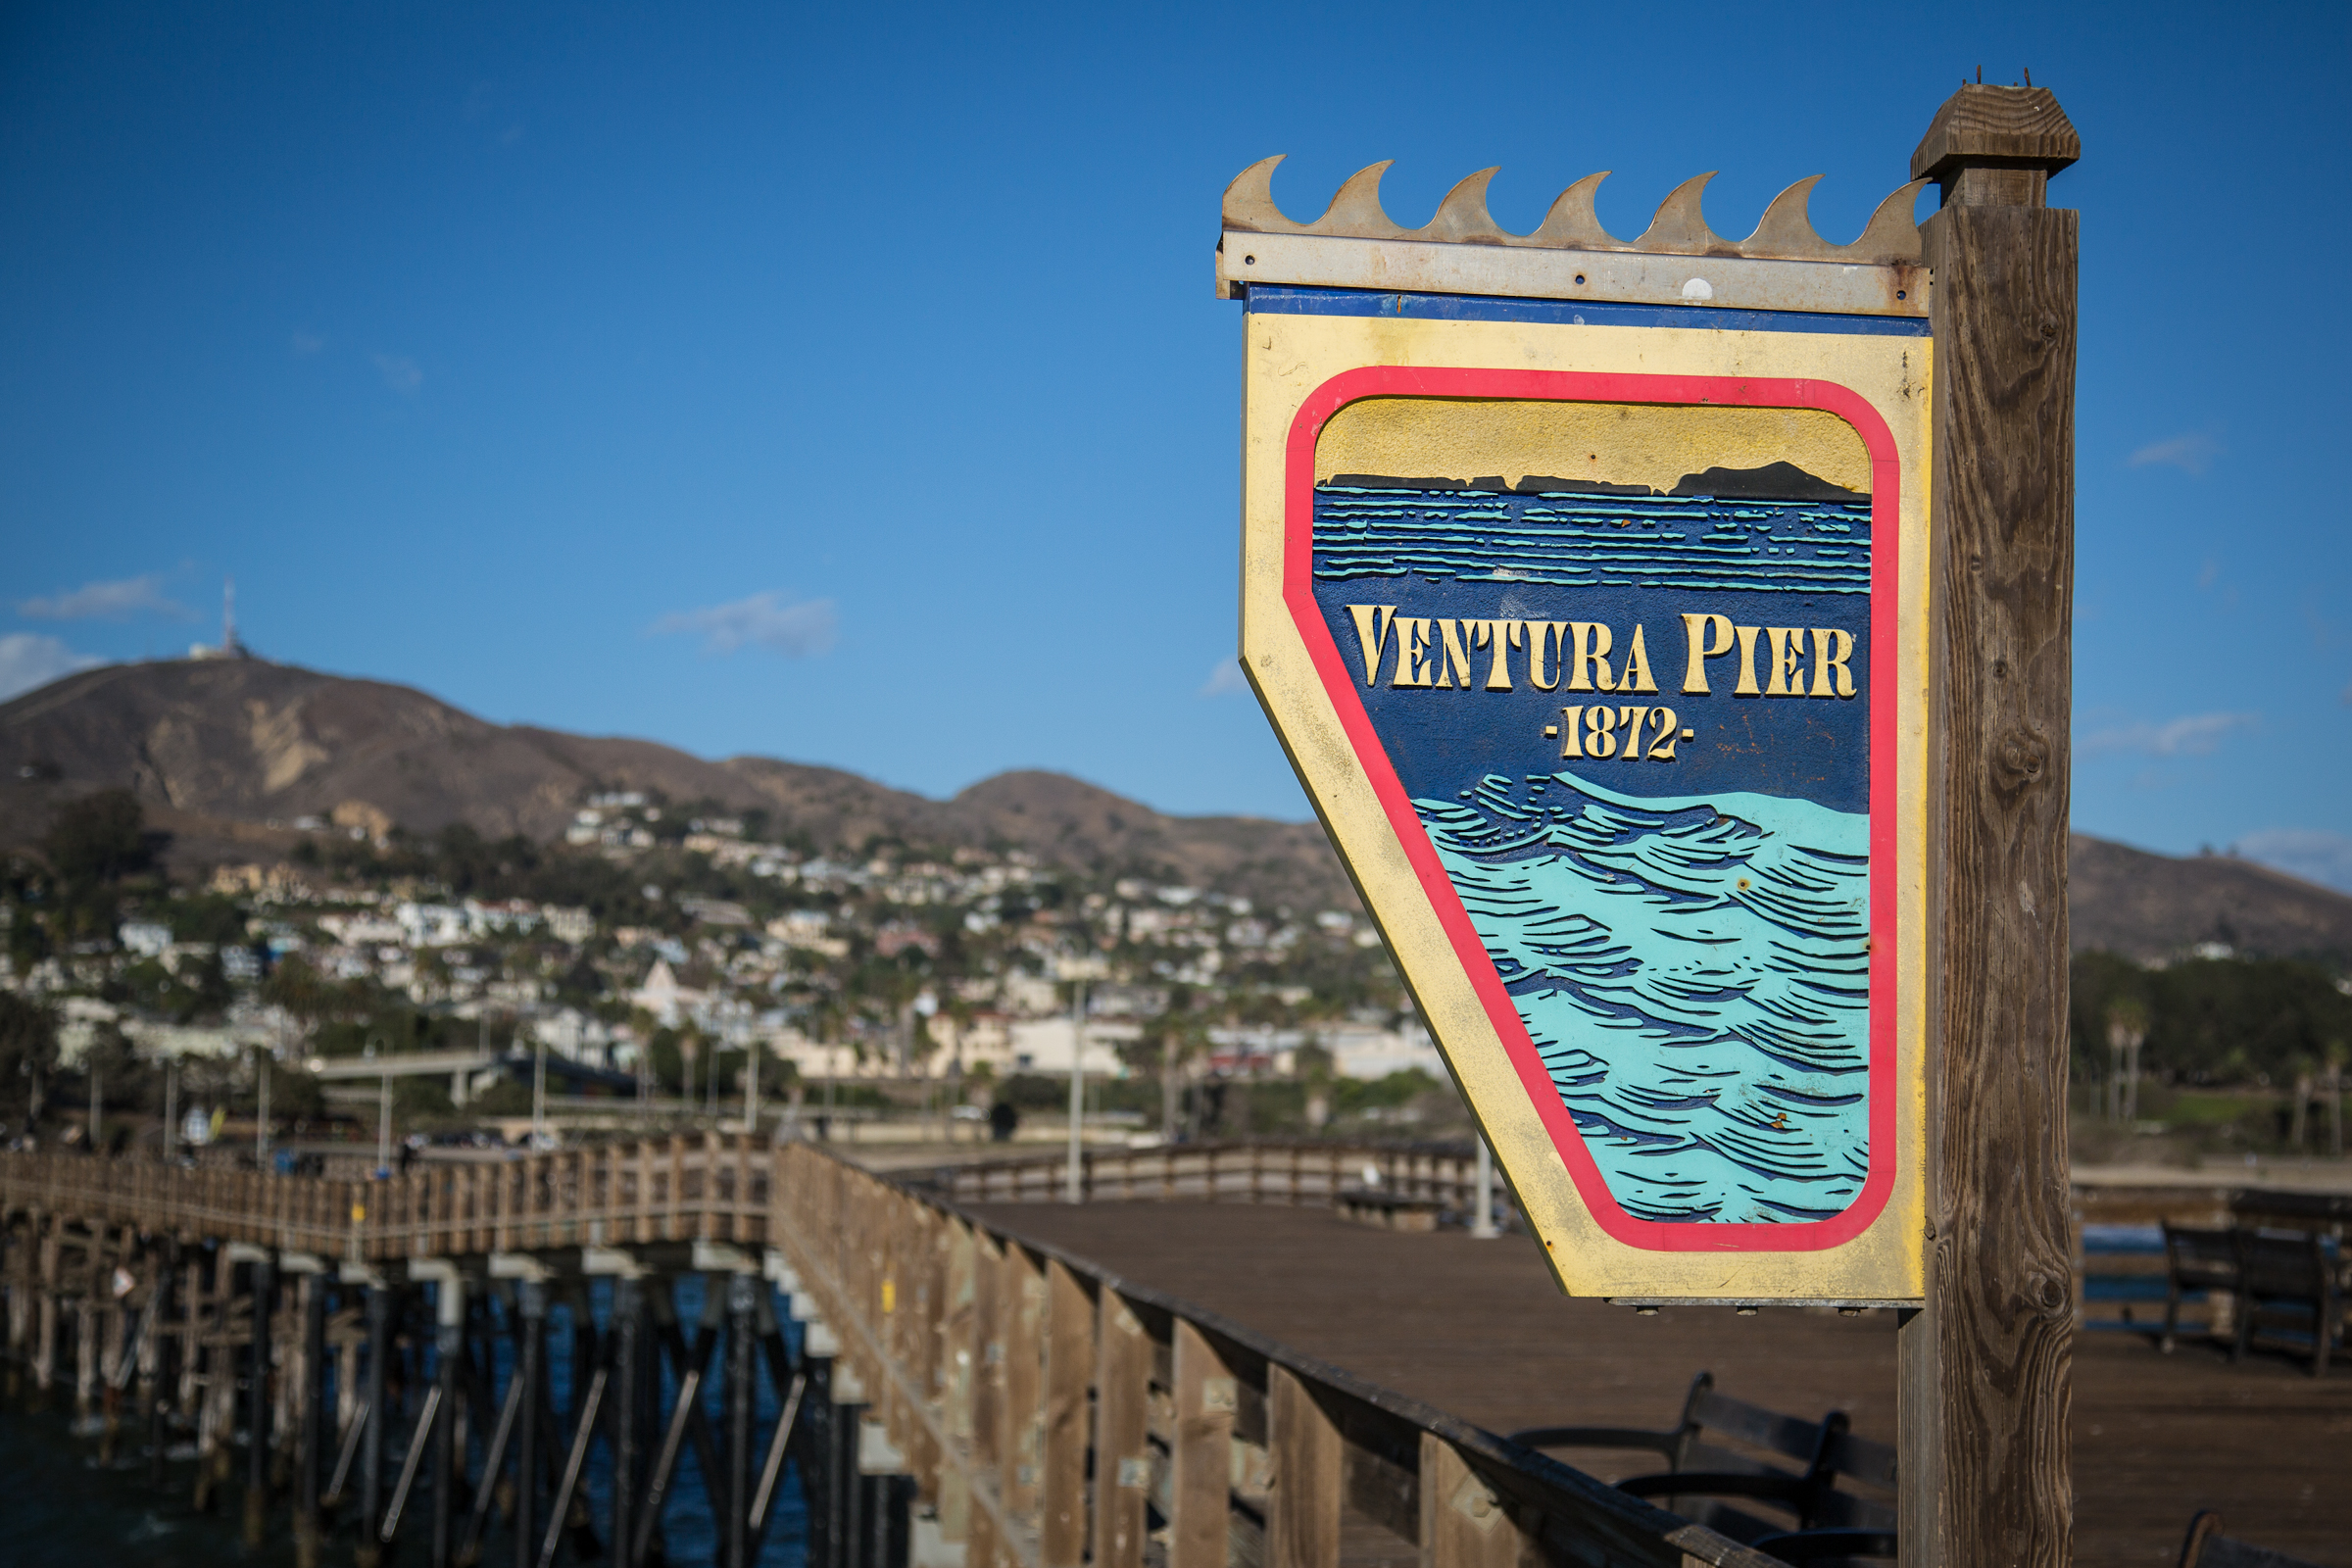 Ventura pier | Ventura Beach Sights | Pinterest